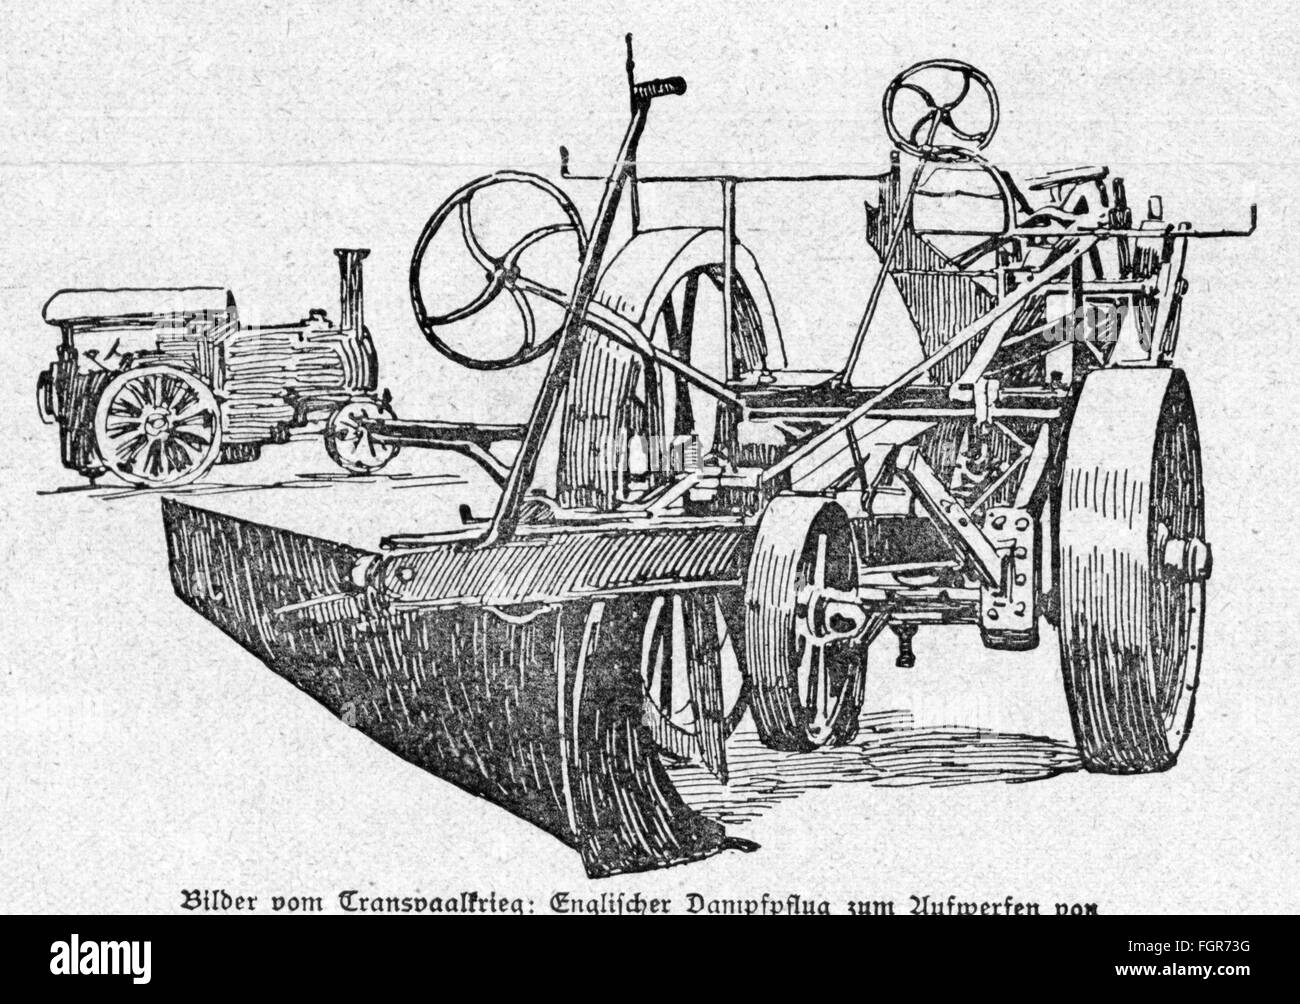 Second Boer War 1899 - 1902, British steam plough for the digging of trenches, drawing, 'Die Woche', Berlin, - Stock Image